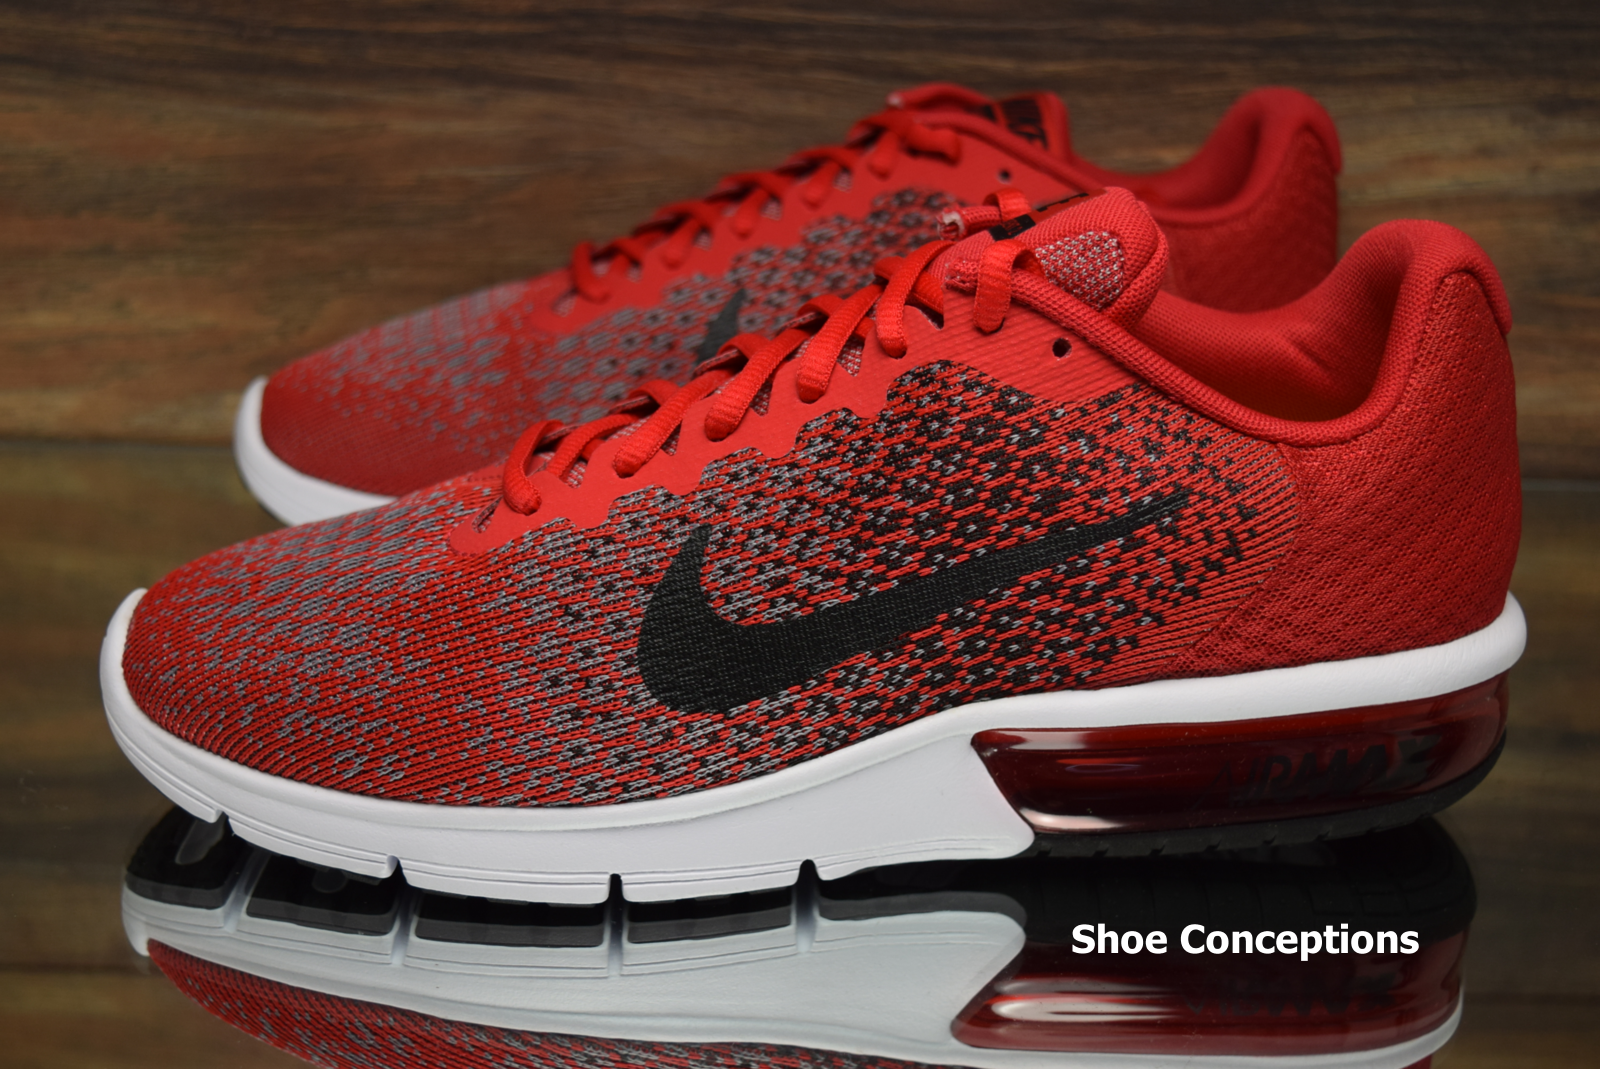 b8d99fa4ed5ad ... Nike Air Max Sequent Sequent Sequent 2 Red Black 852461-600 Running  Shoes Men s ...